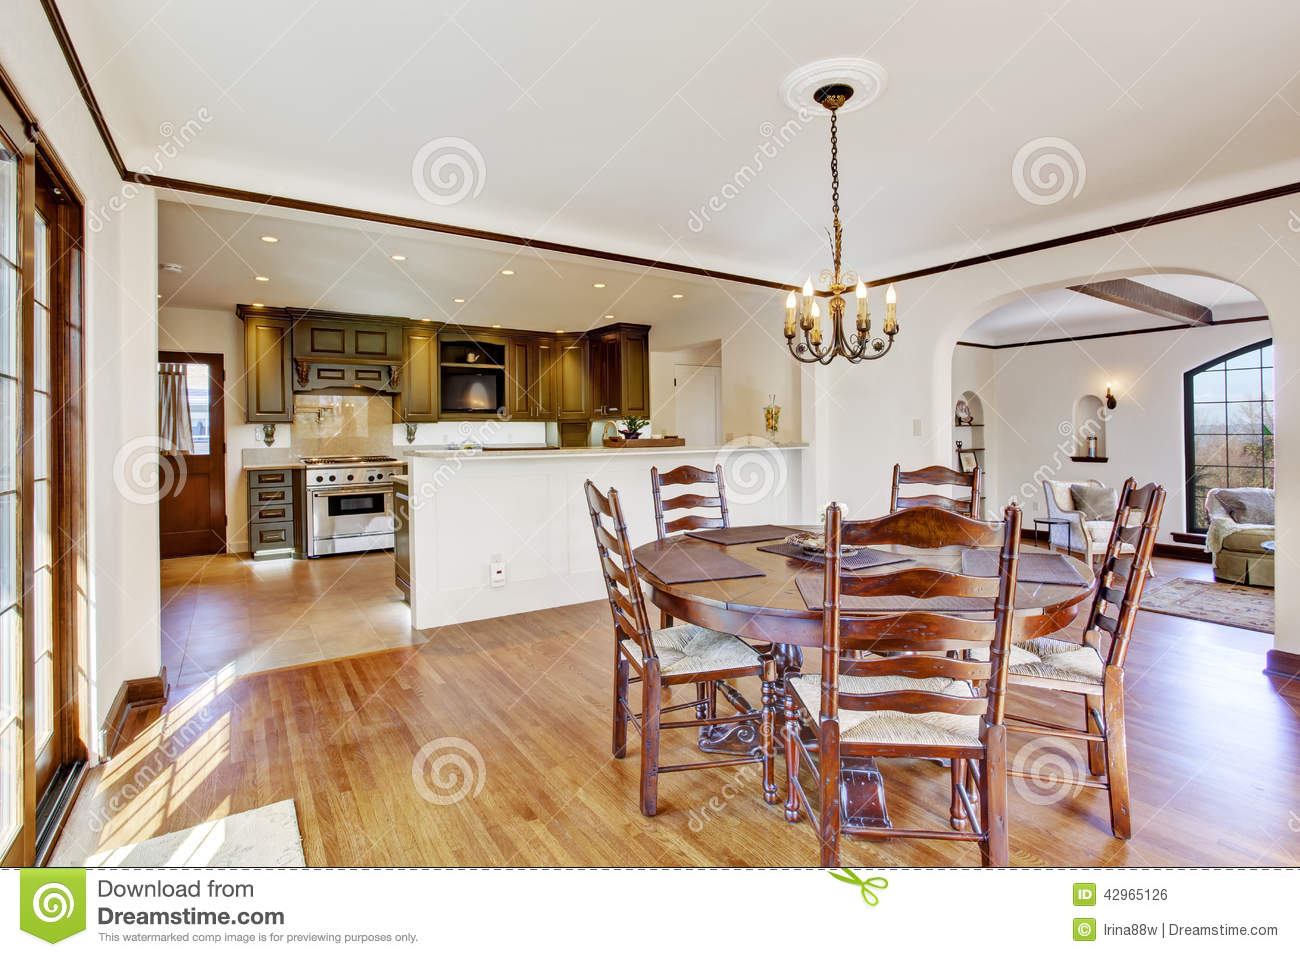 Luxury Dining Room With Round Table And Chairs Stock Photo ...